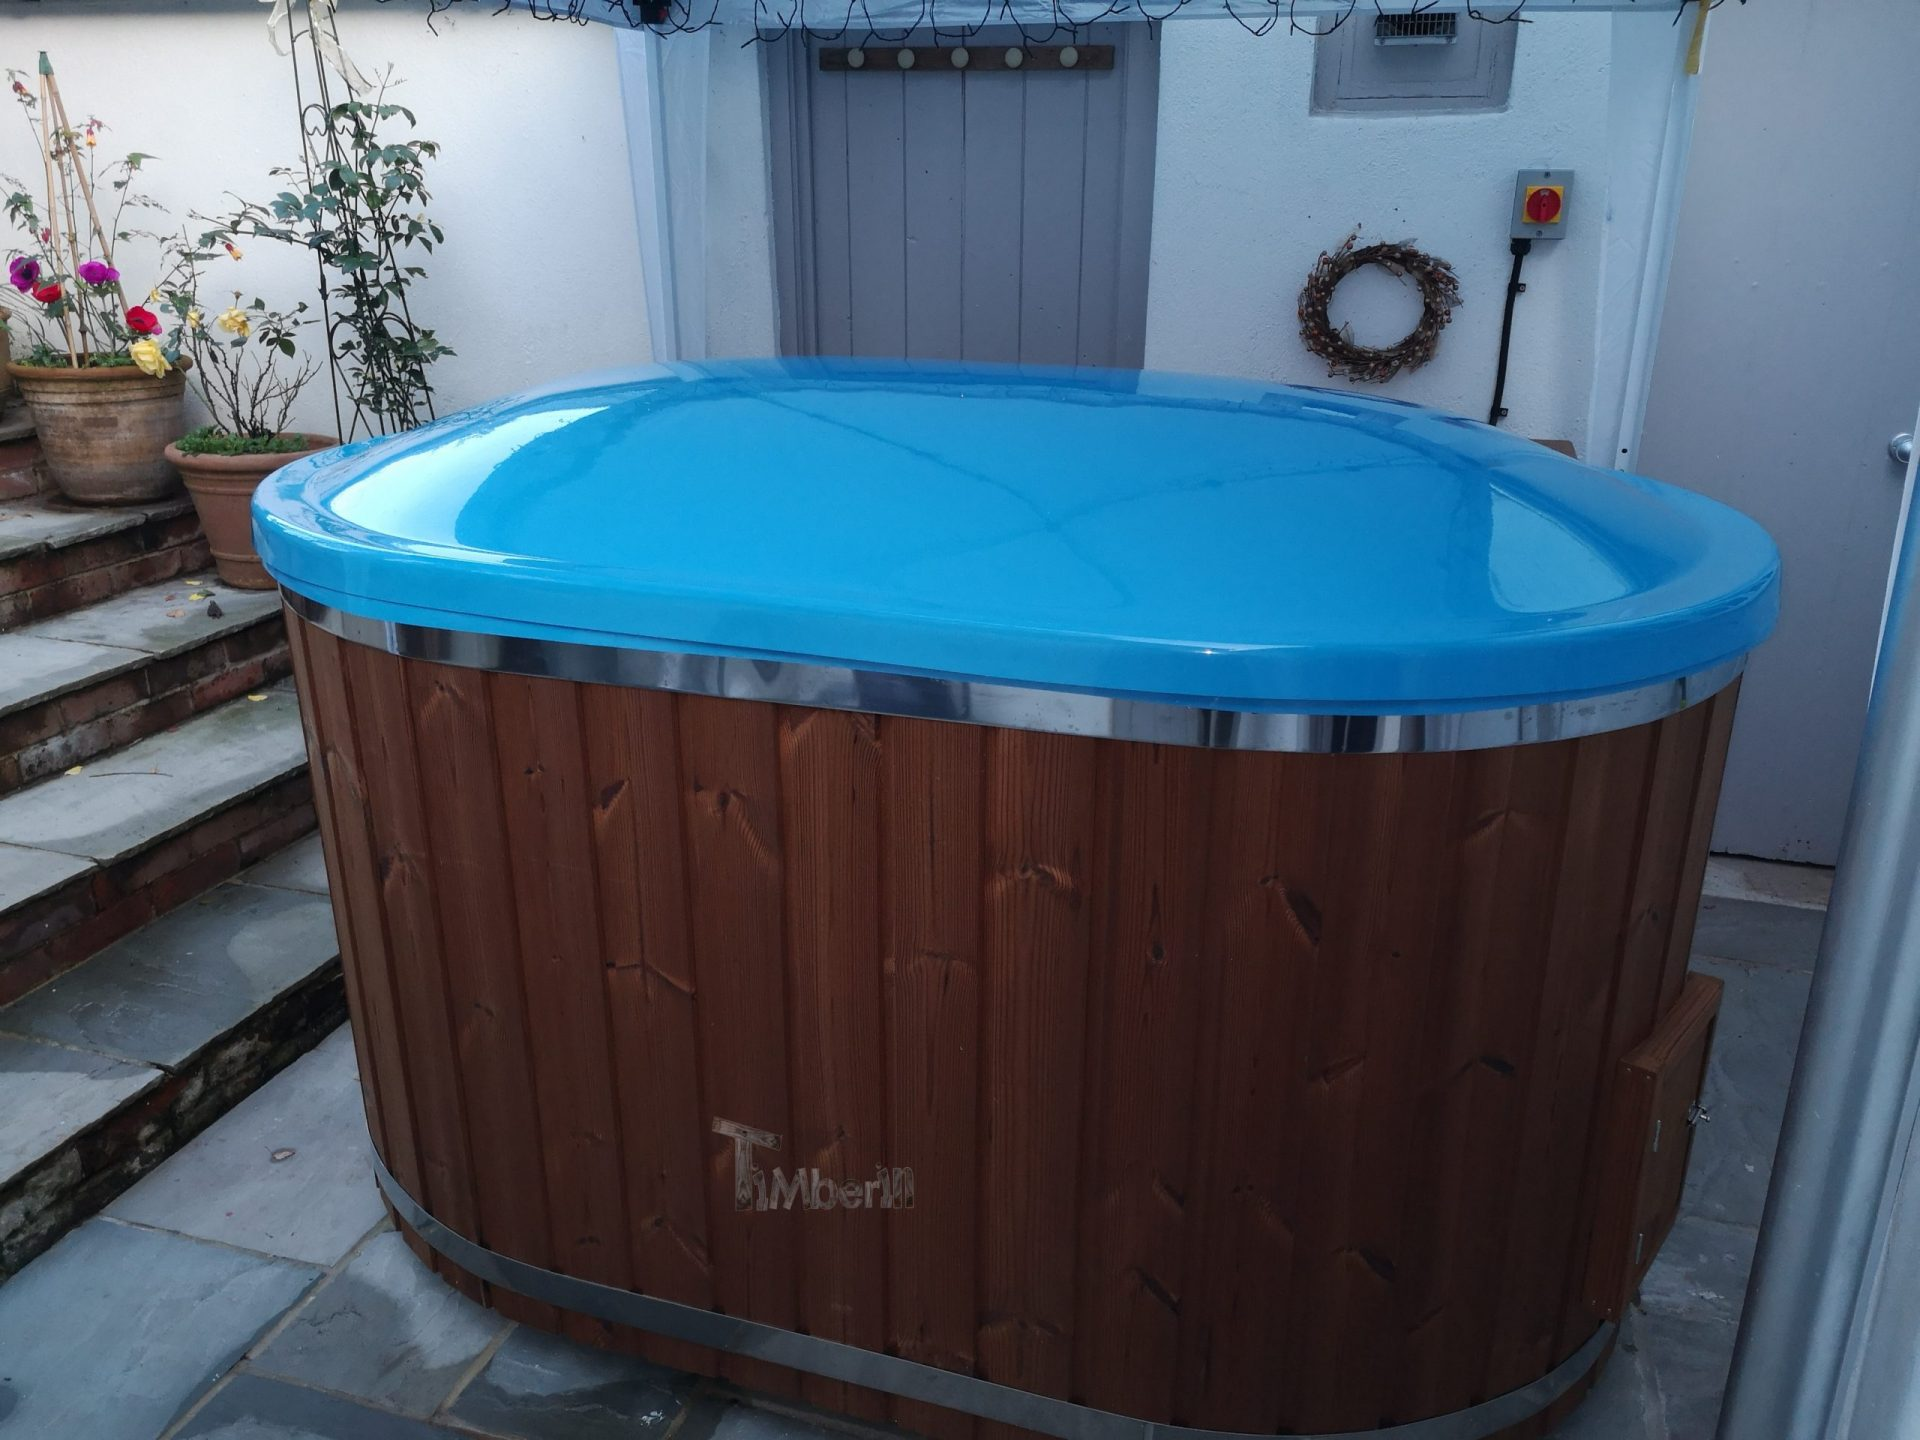 Oval hot tub for 2 persons with fiberglass liner Stephen Bridport United Kingdom 2 scaled